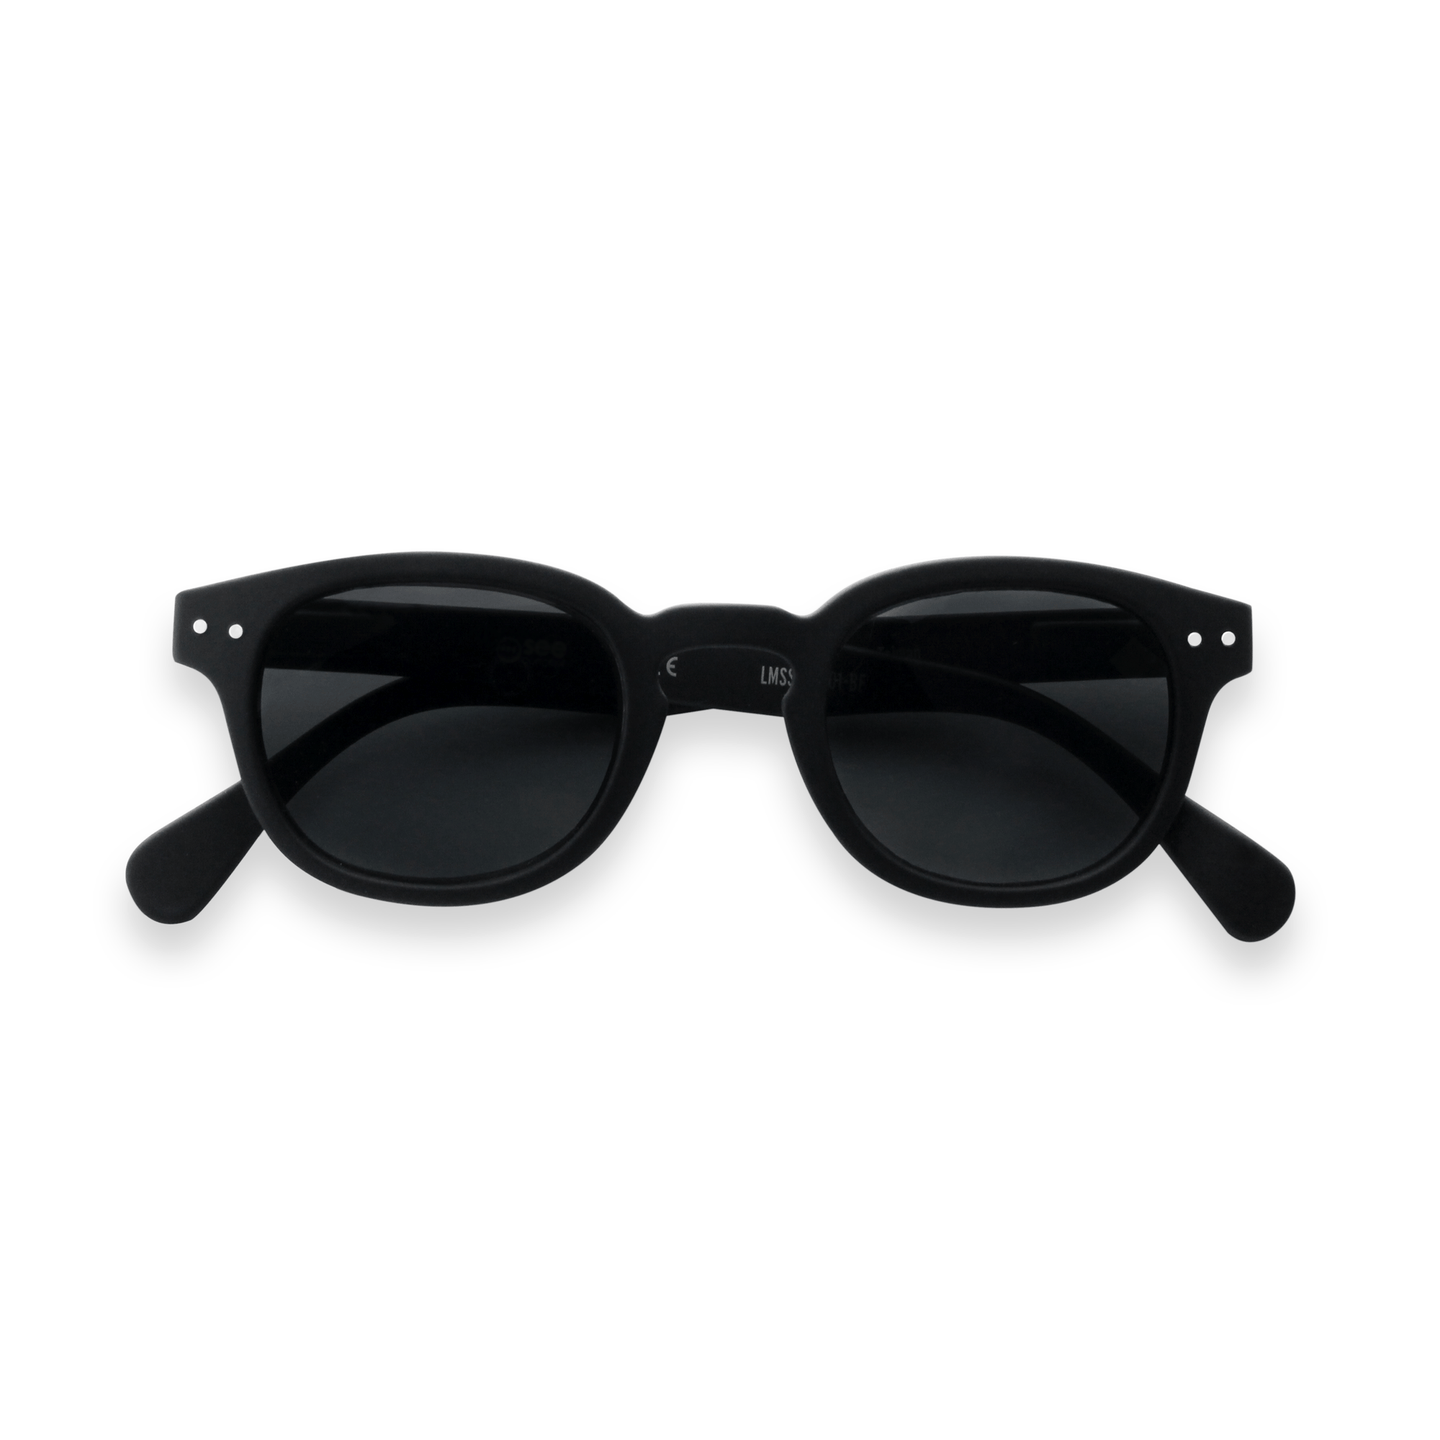 IZIPIZI Junior #C - Sunglasses / Neighborhood Goods